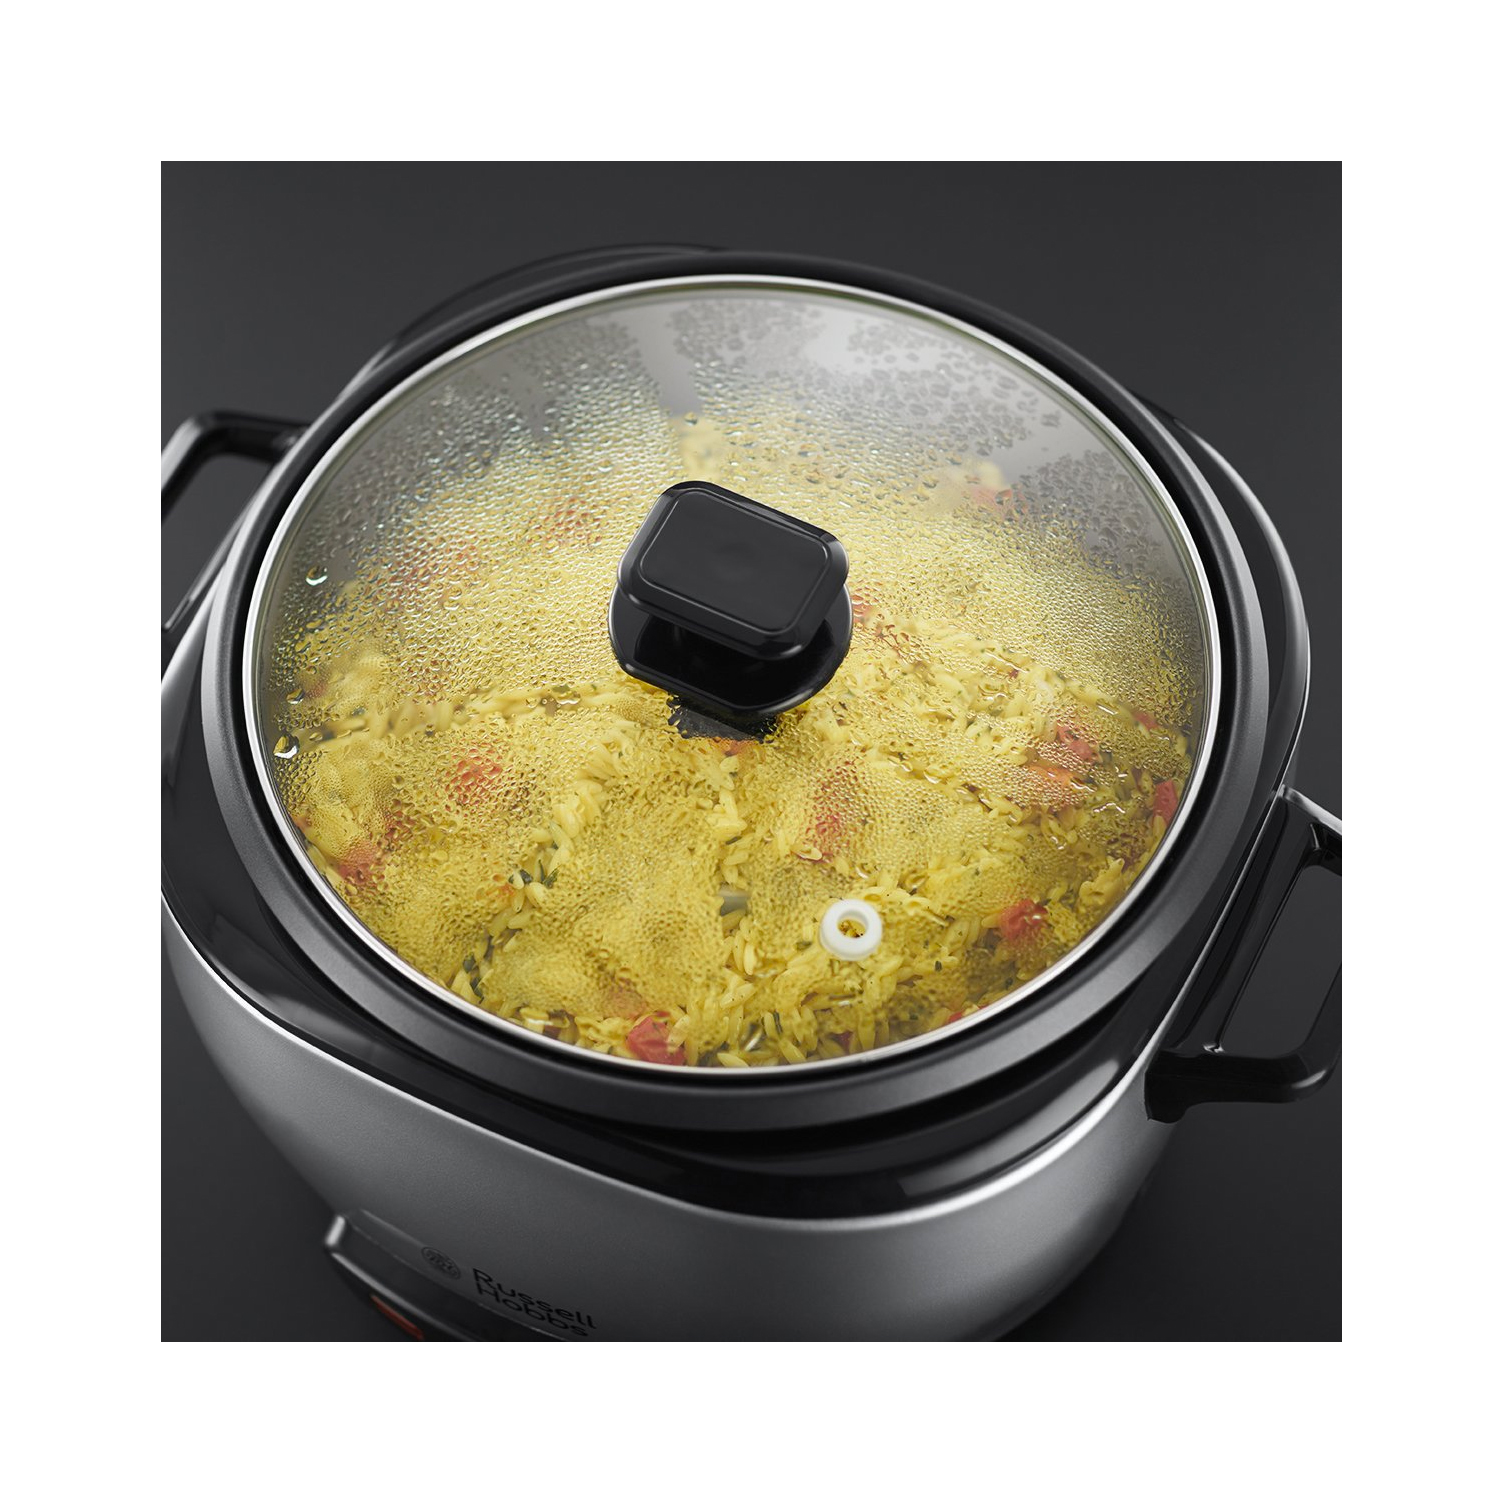 Russell Hobbs 14 Cup MaxiCook Rice Cooker 4